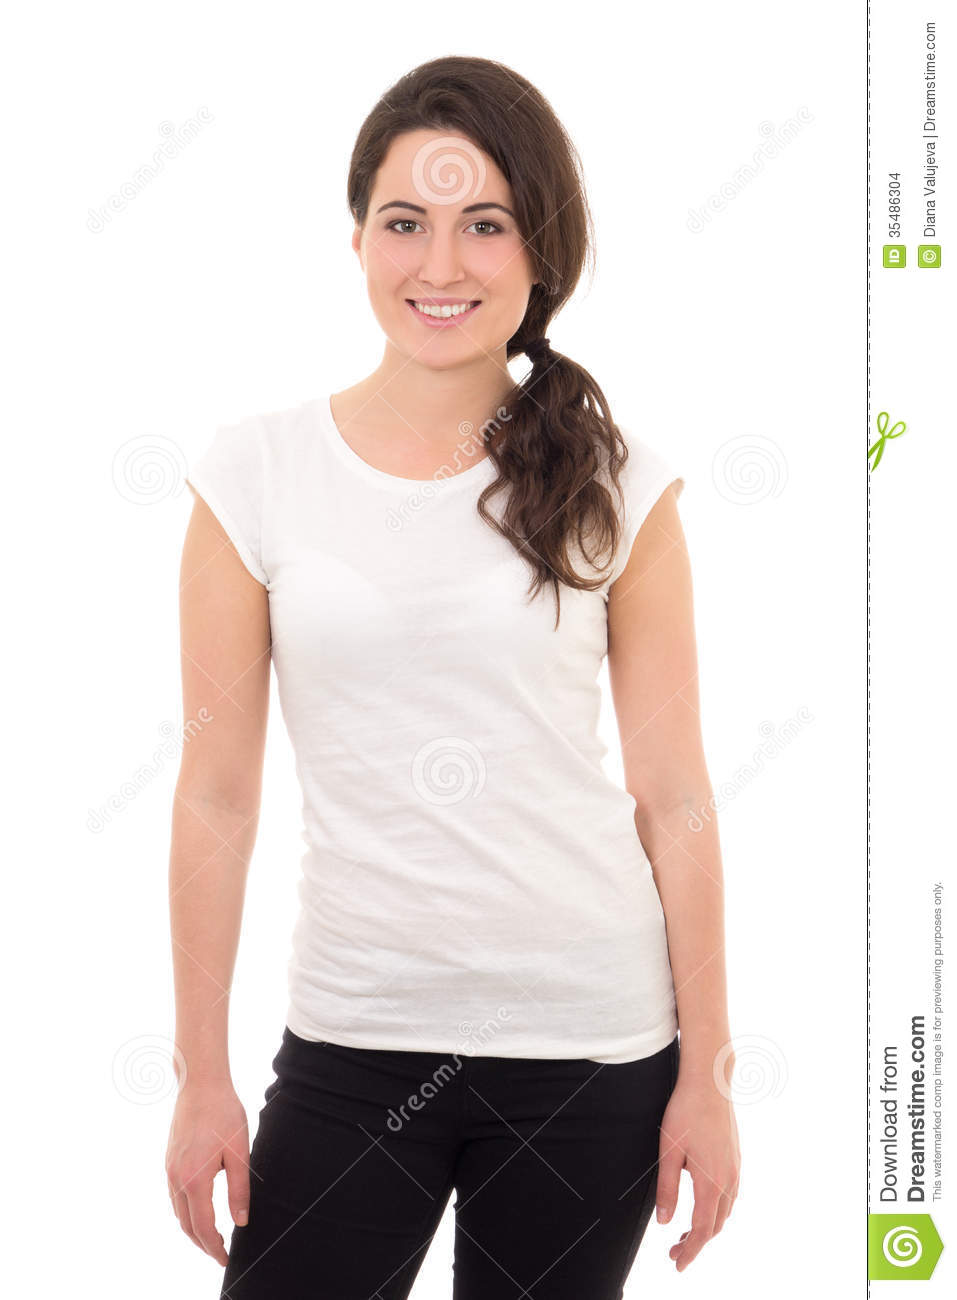 Attractive Woman In White T-shirt Smiling Isolated On White Stock ...